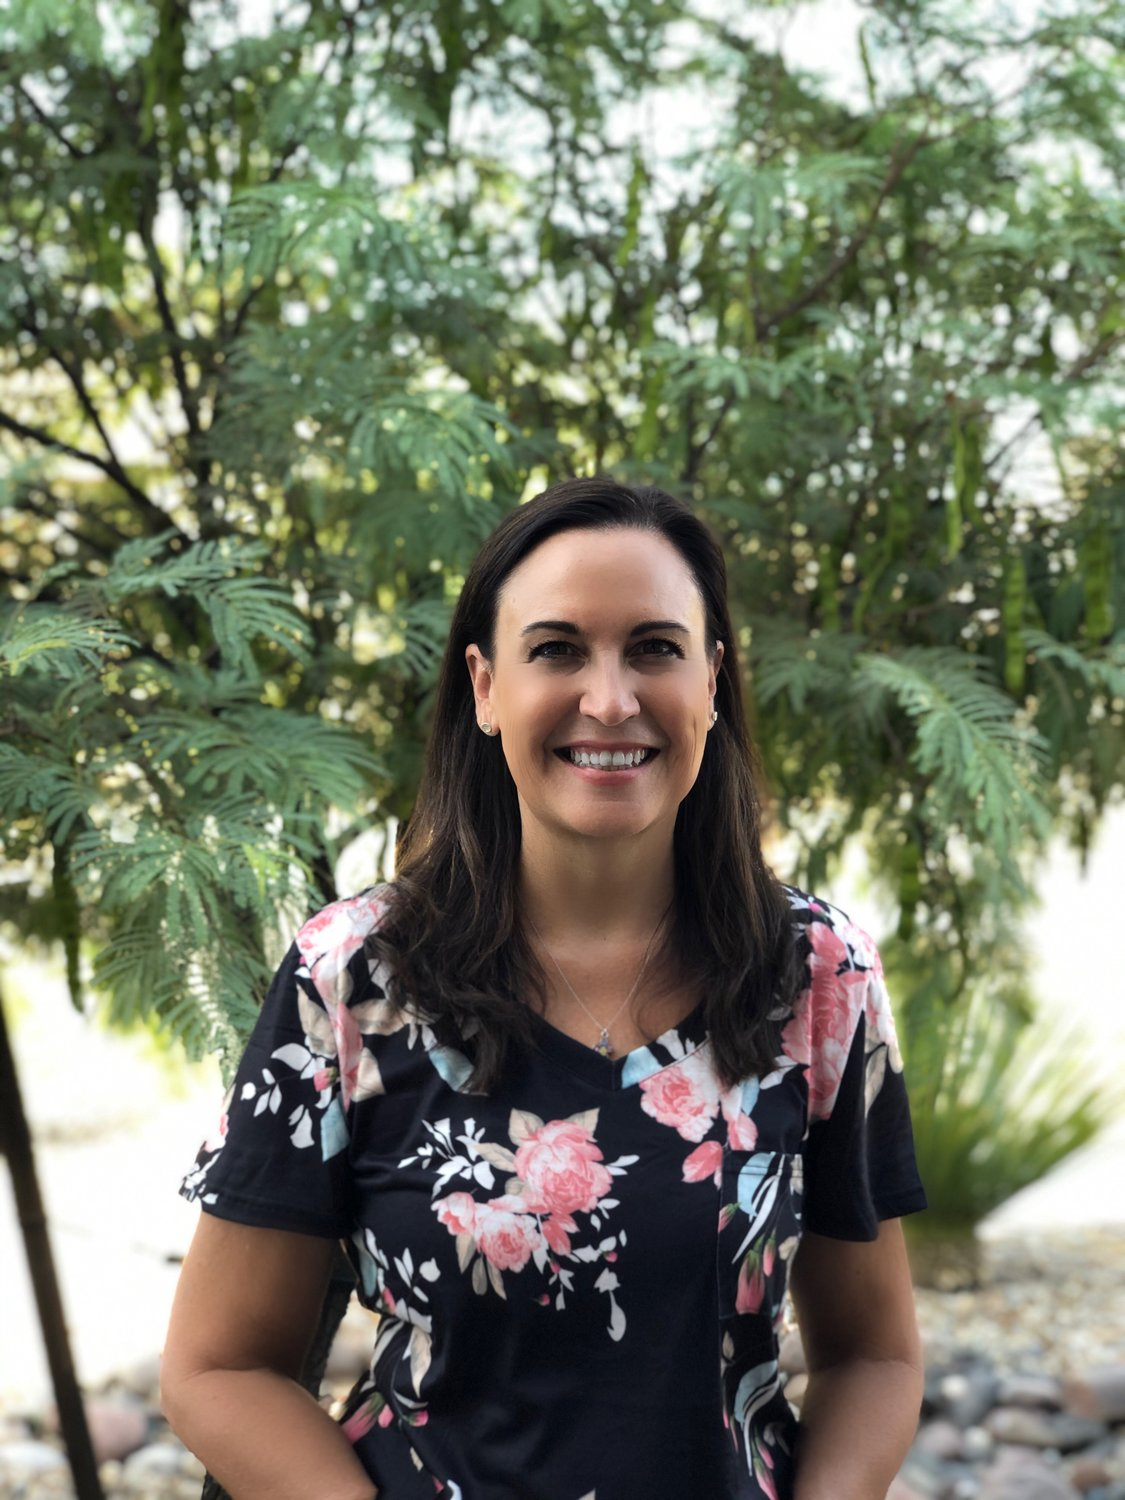 Peggy Woodard, a teacher at Hidden Hills Elementary in Phoenix, is one of two Maricopa teachers to receive the Arizona Council on Economic Education's 2020 Economic Education Teacher of the Year Award.